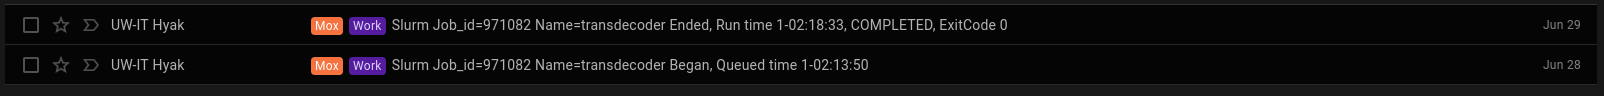 Screencap of Mox Transdecoder run time